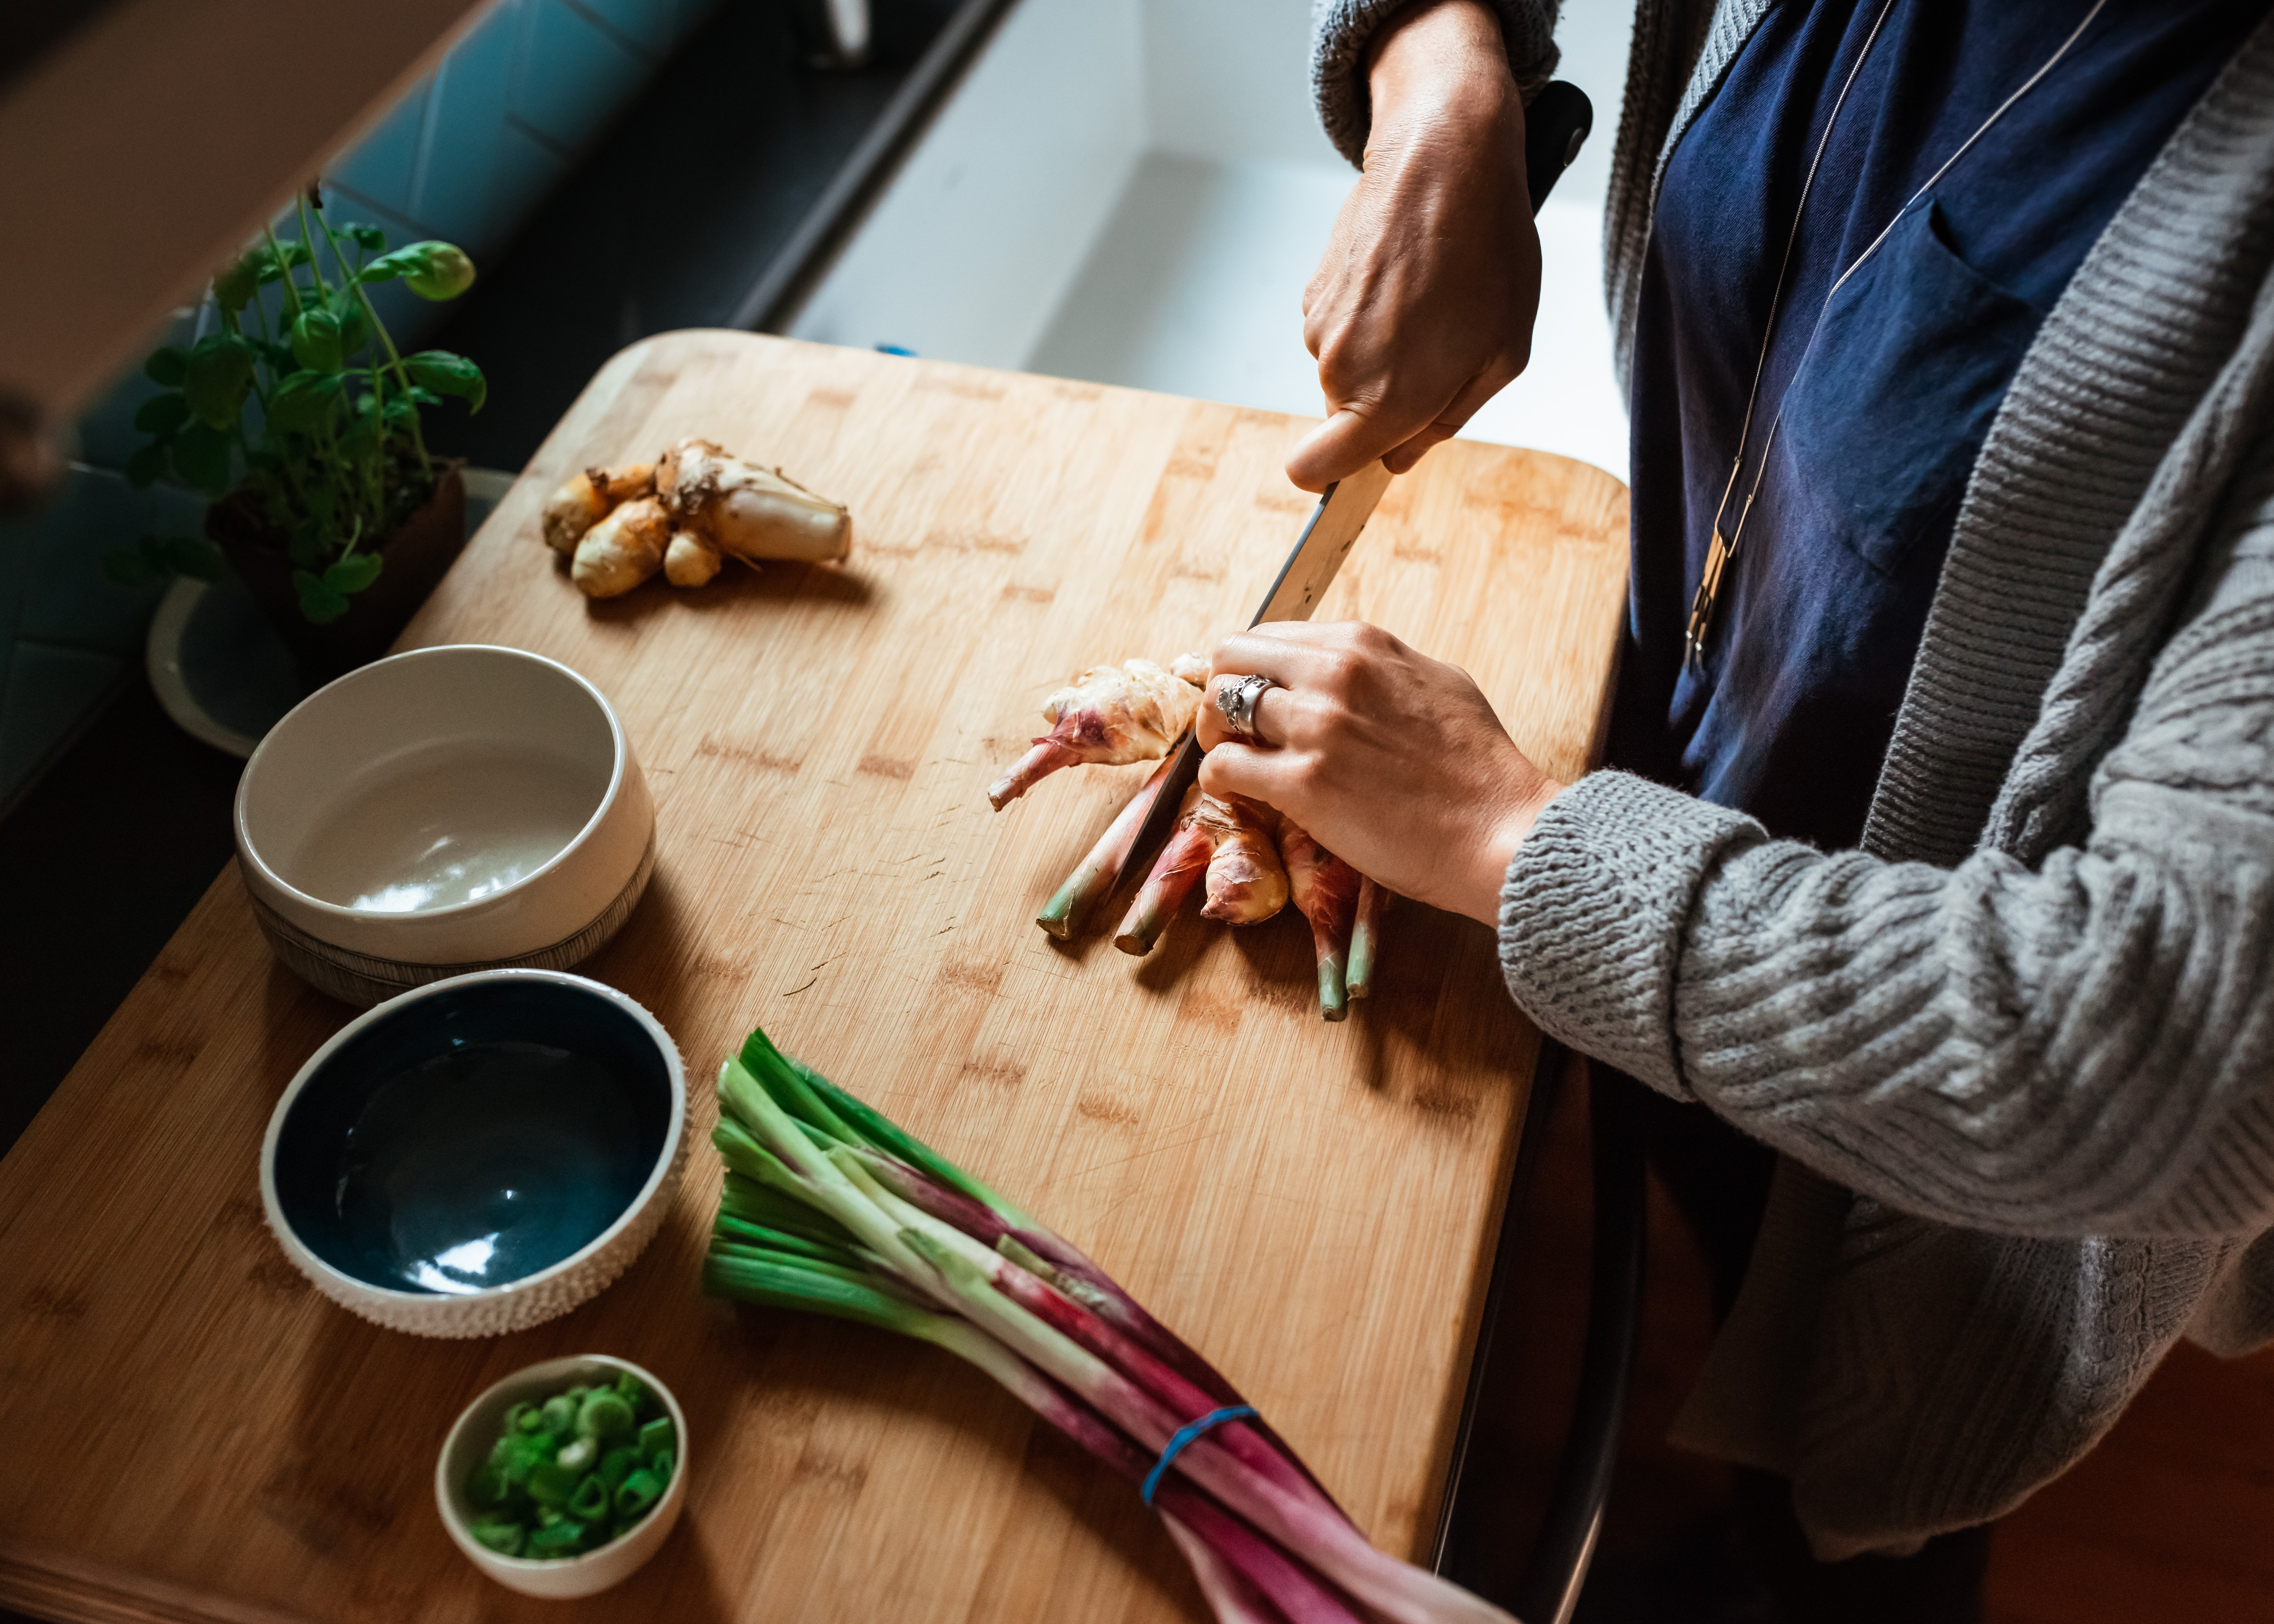 Candid photo of woman cutting vegetables